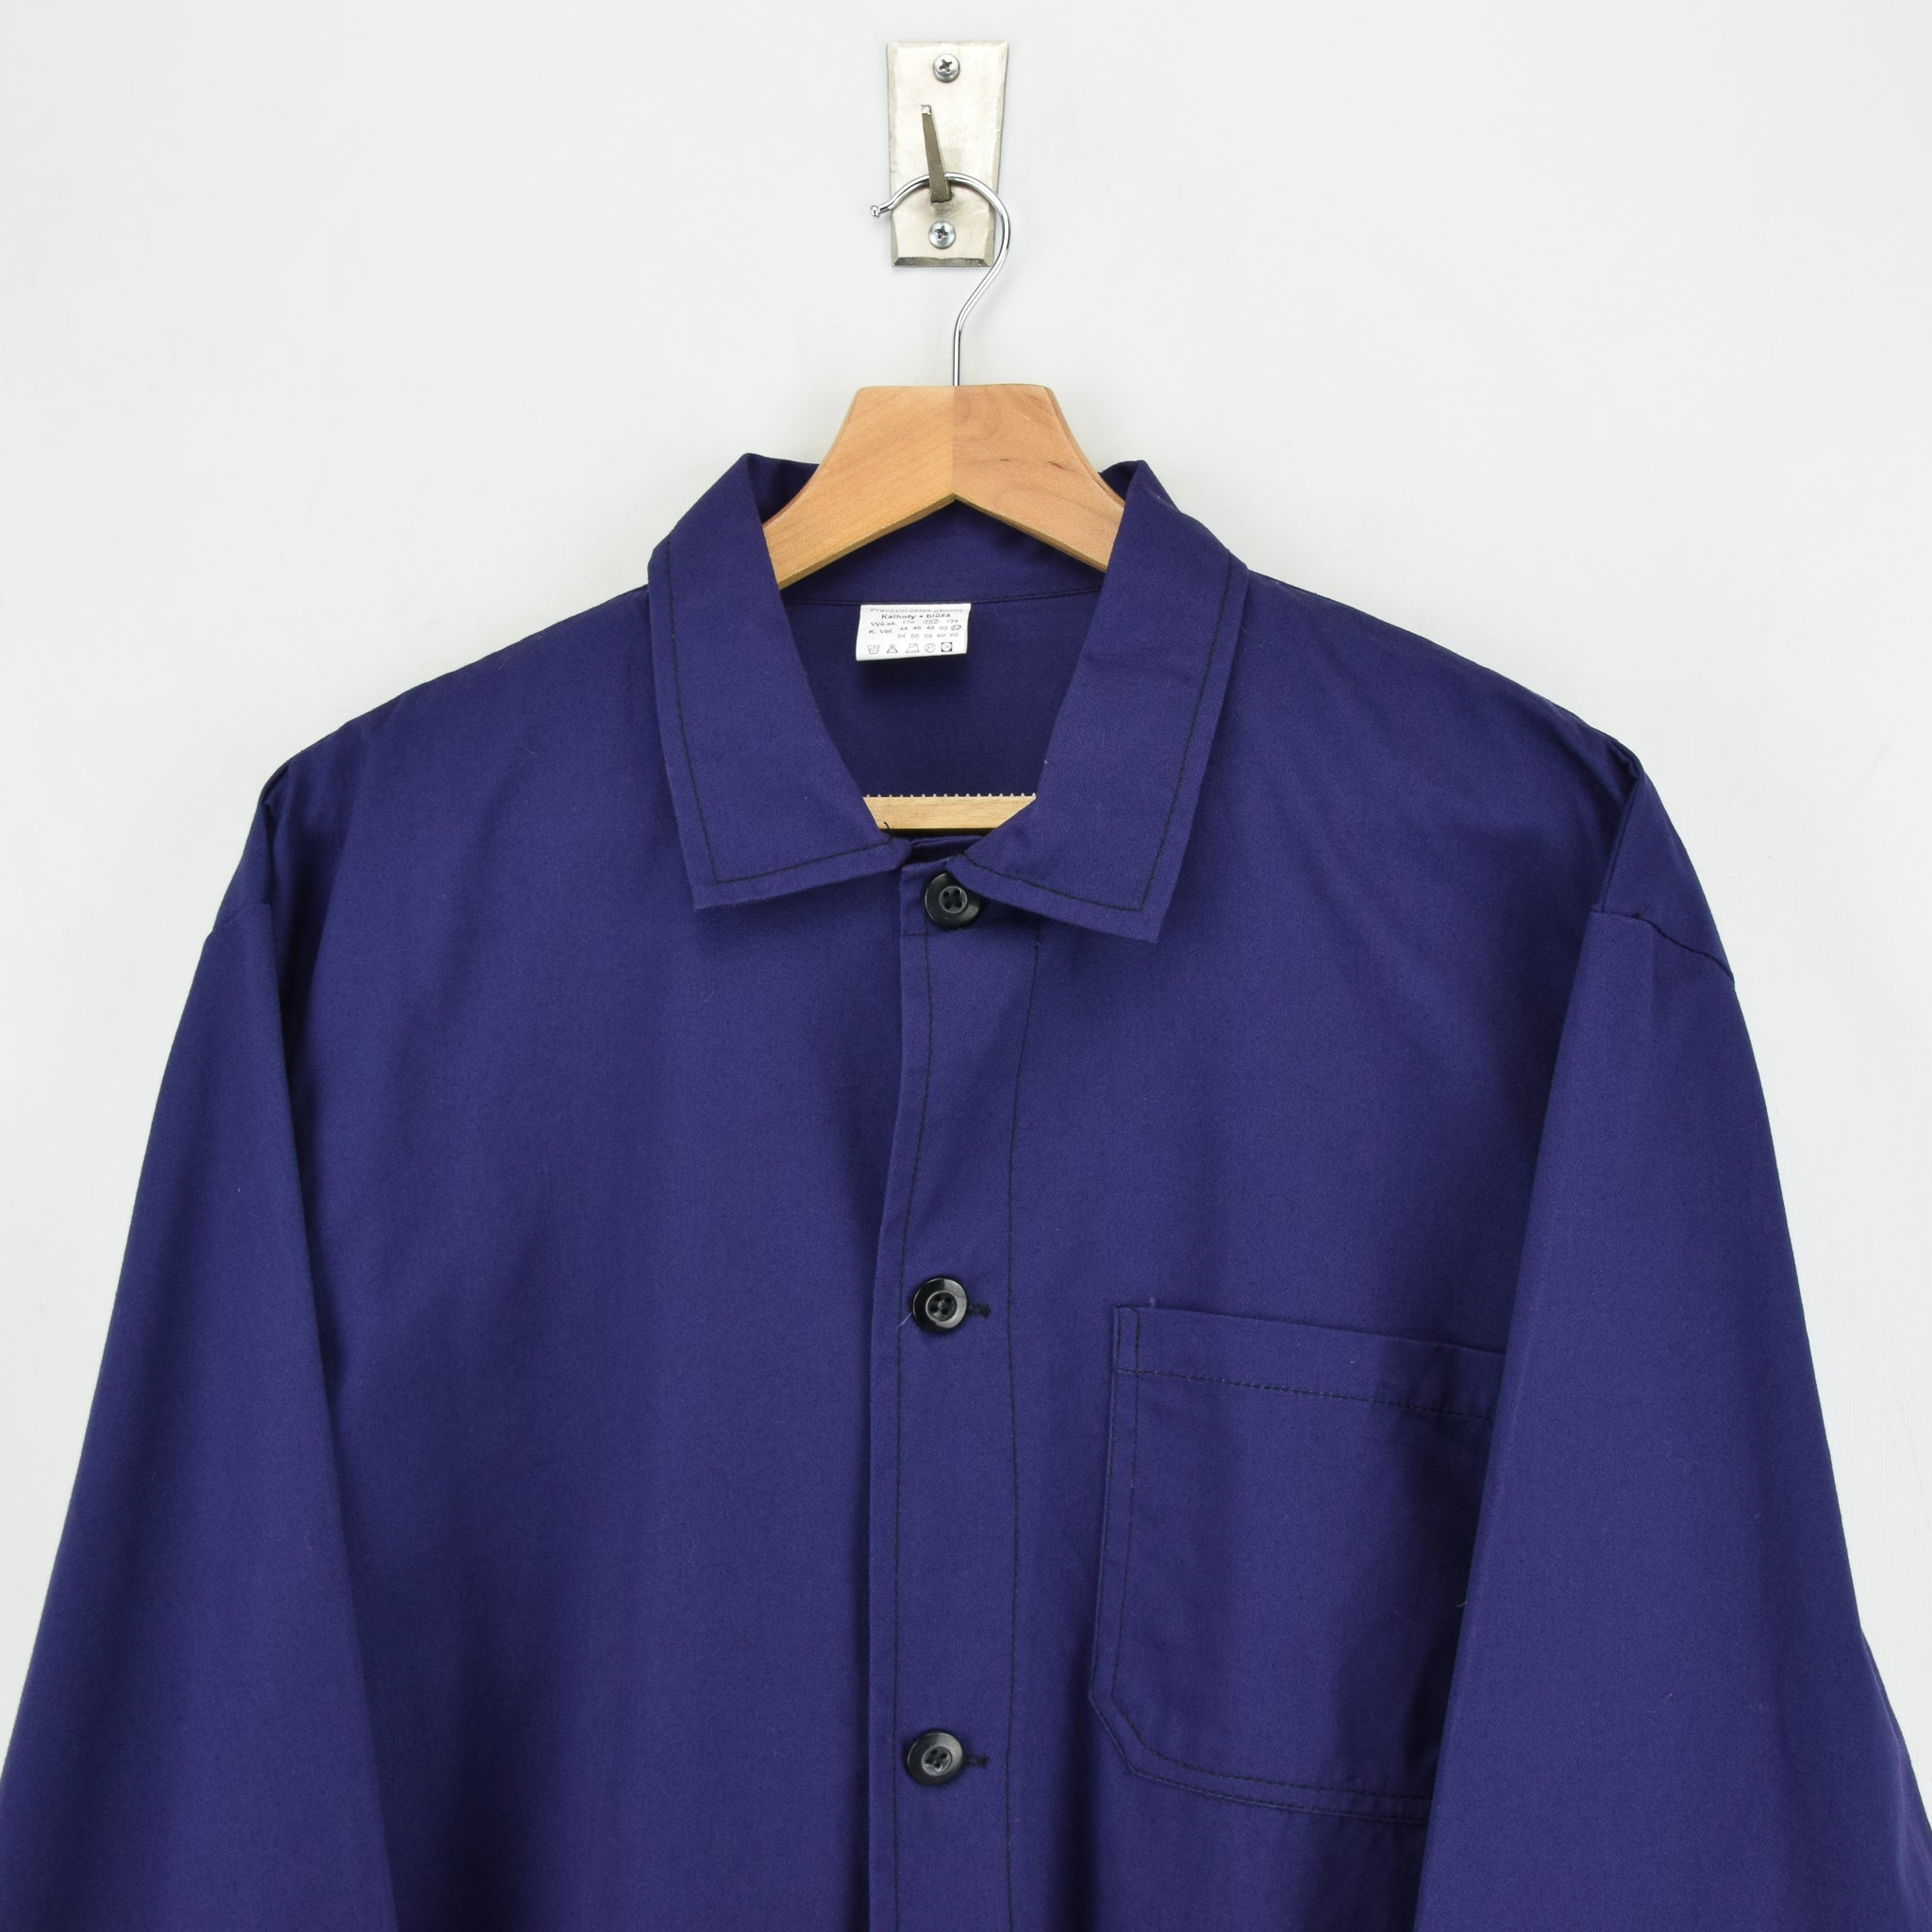 Vintage Blue Purple French Style Worker Sanforized Cotton Chore Jacket L chest